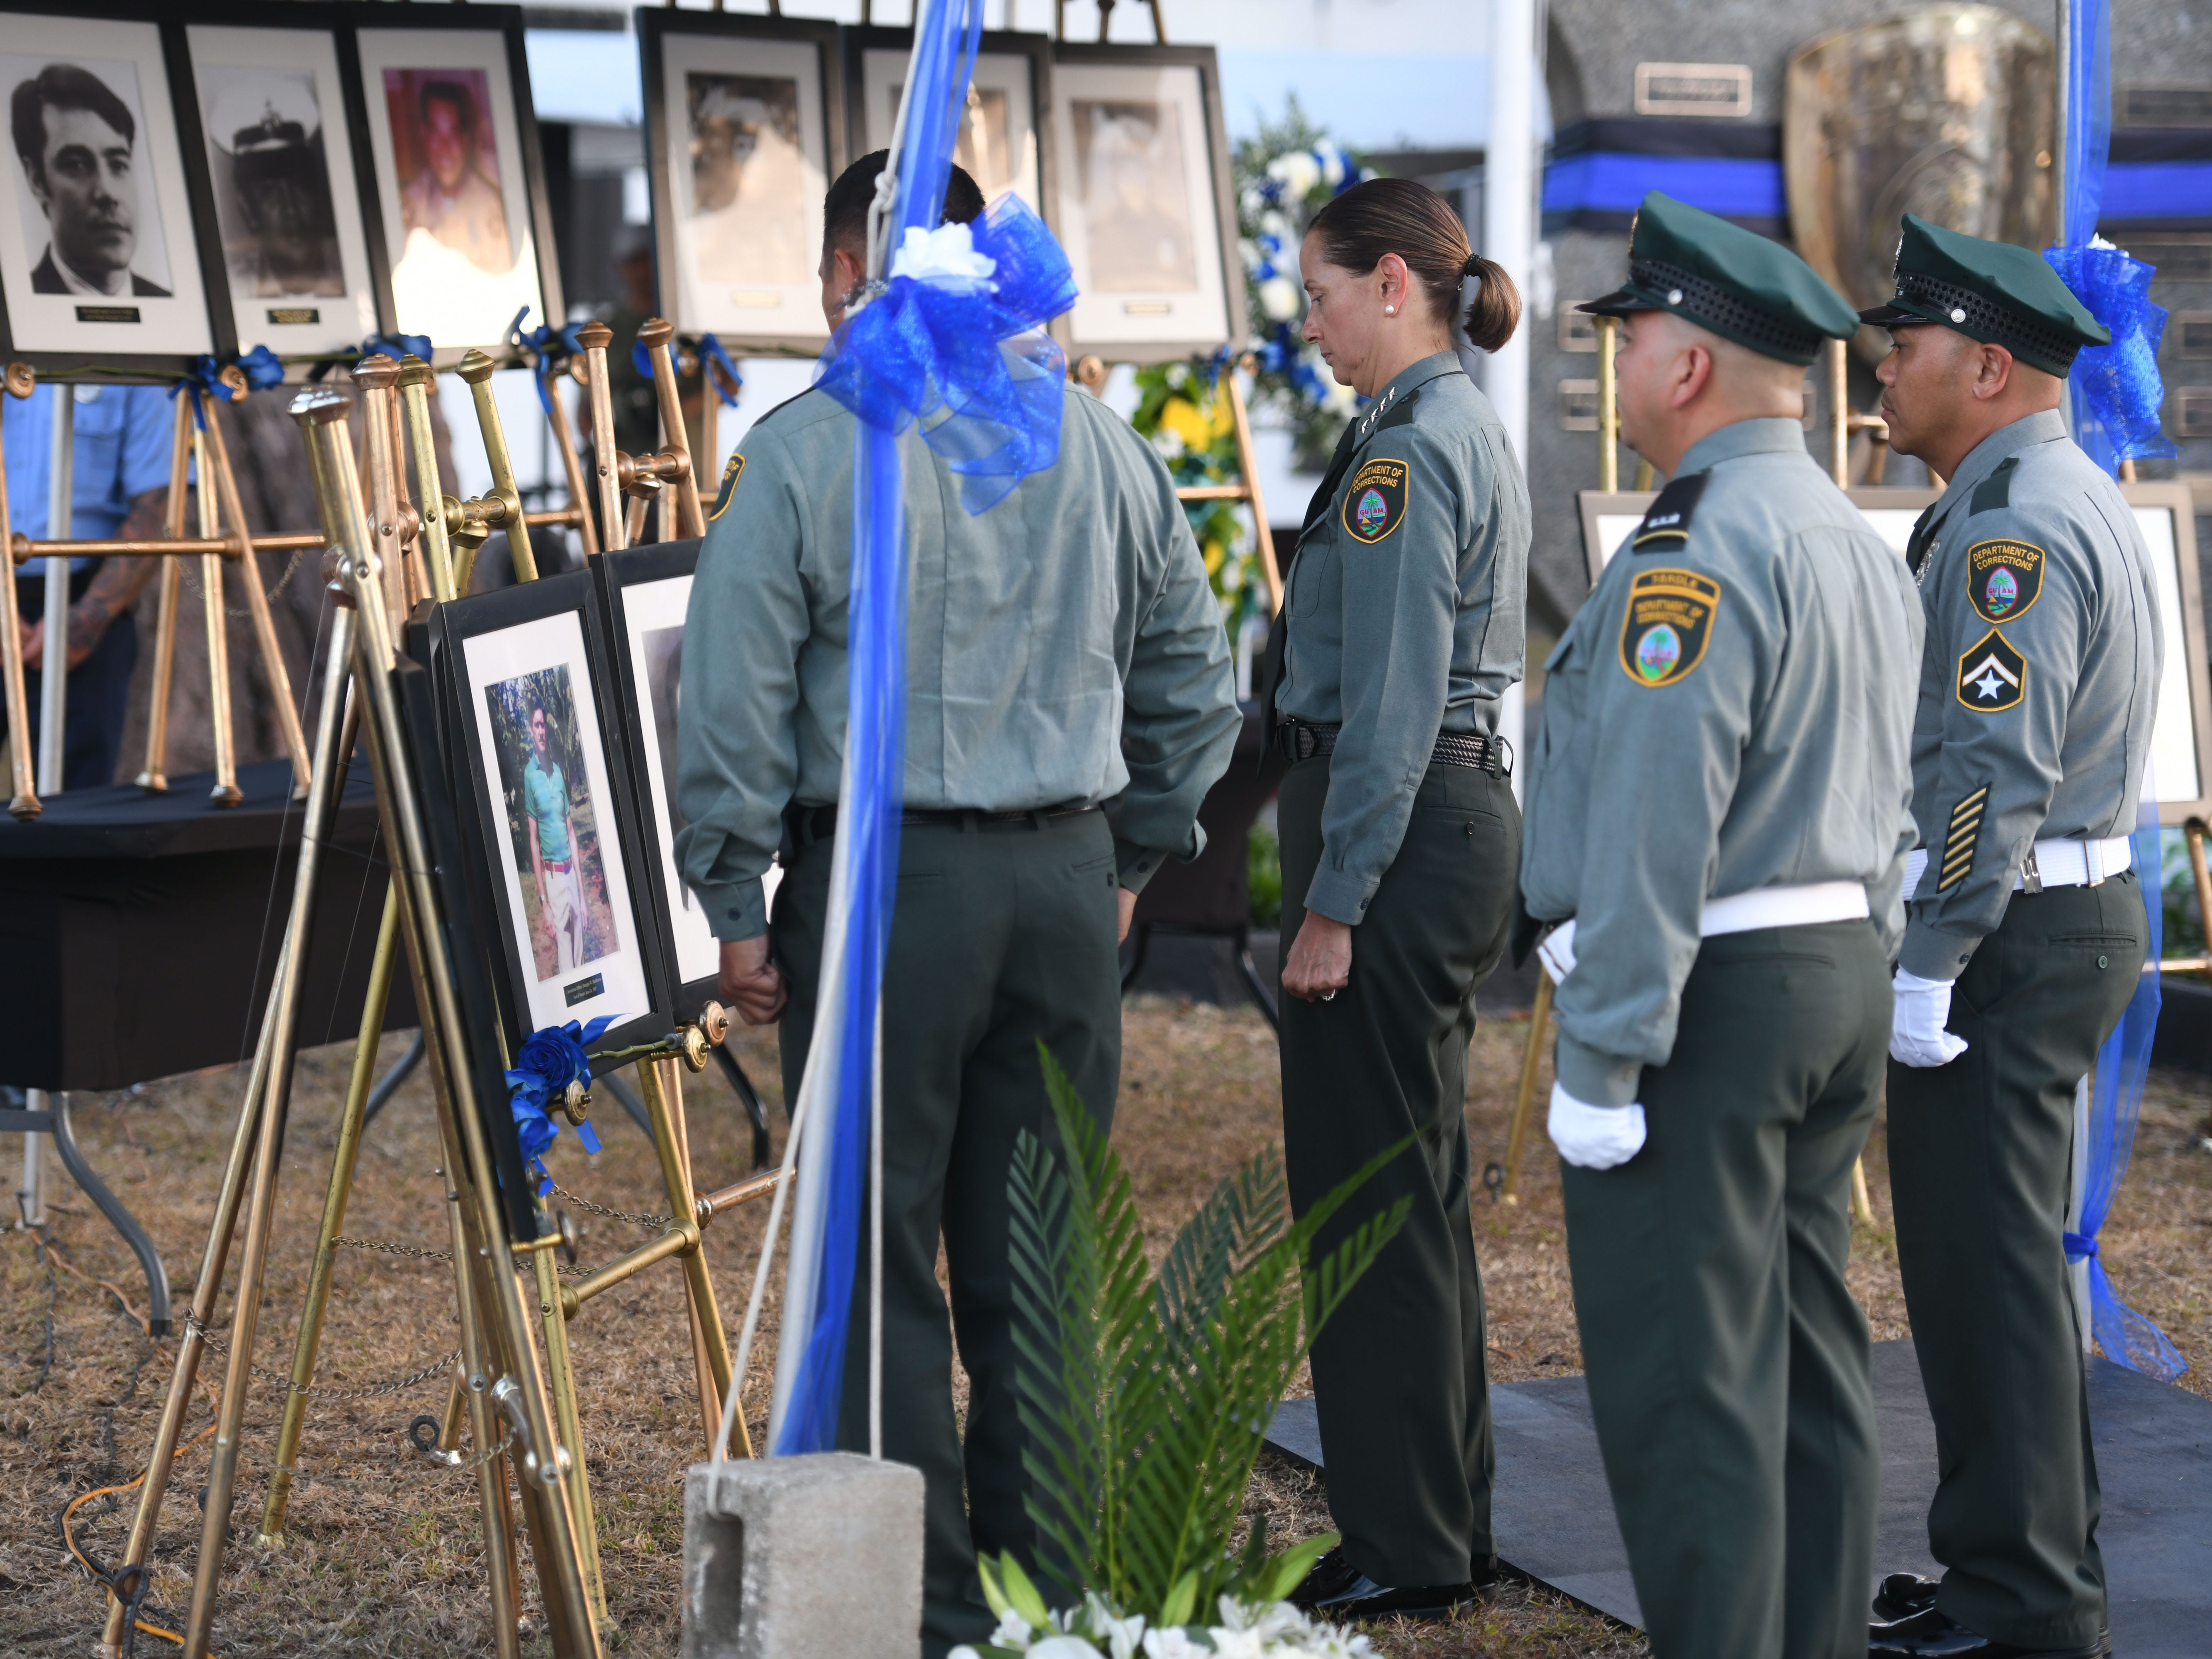 The service of Guam Department of Corrections Officer Douglas Mashburn is remembered by fellow officers during the Peace Officers' Memorial Service and Wreath Laying Ceremony held at the Guam Police Department's Badge Memorial Park in Hagåtña on Wednesday, May 15, 2019.